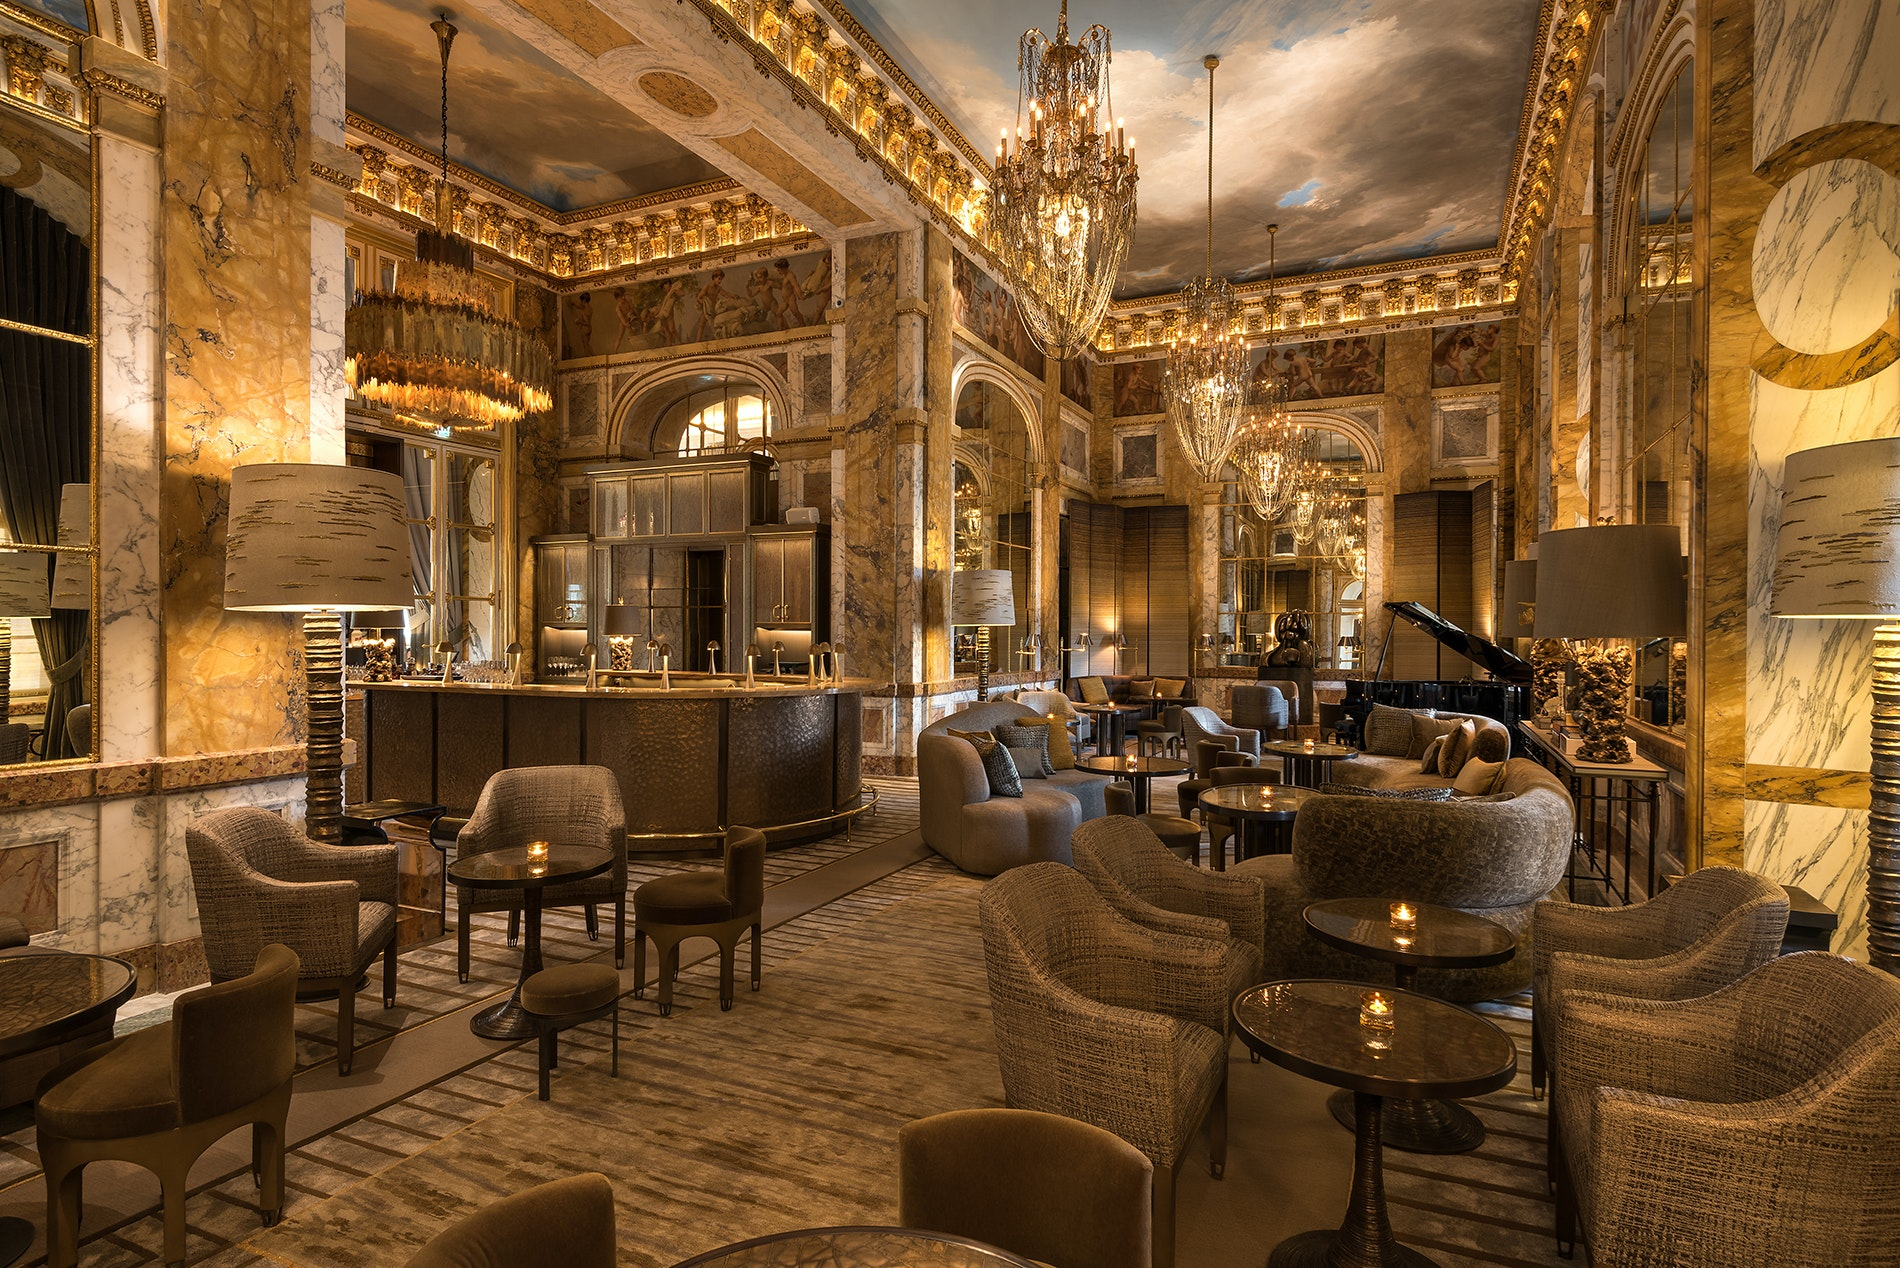 Les Ambassadeurs bar at Hôtel de Crillon, A Rosewood Hotel, offers more than 100 champagne labels served in an 18th century-inspired space.